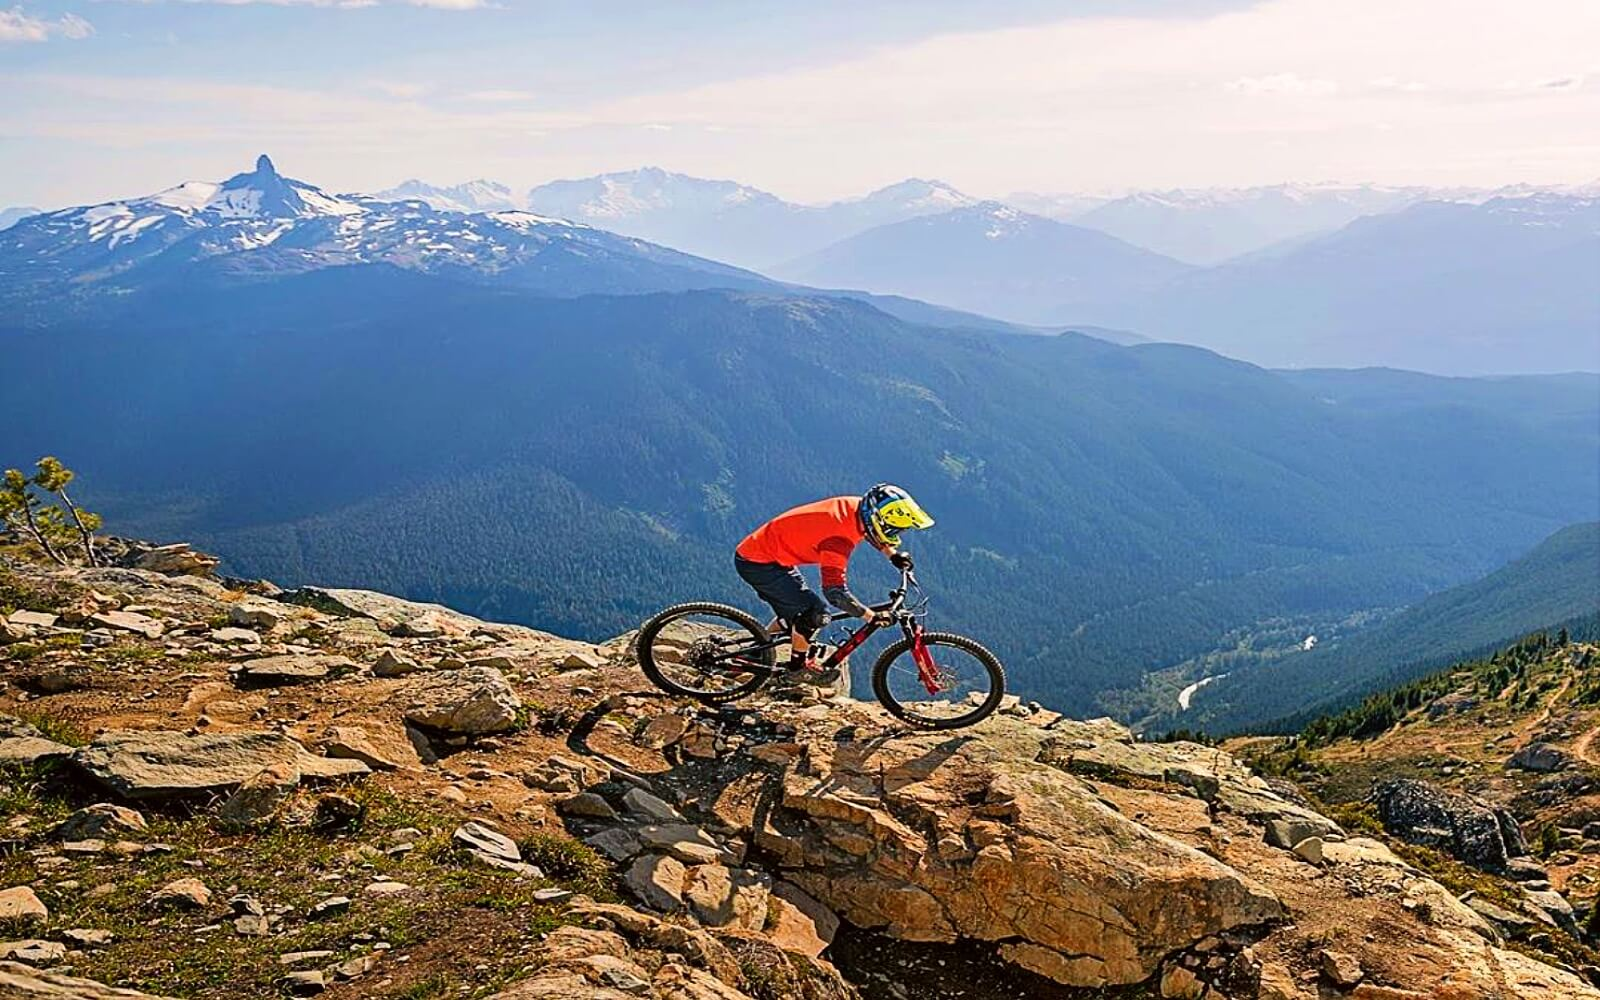 A mountain biker in front of a mountain vista